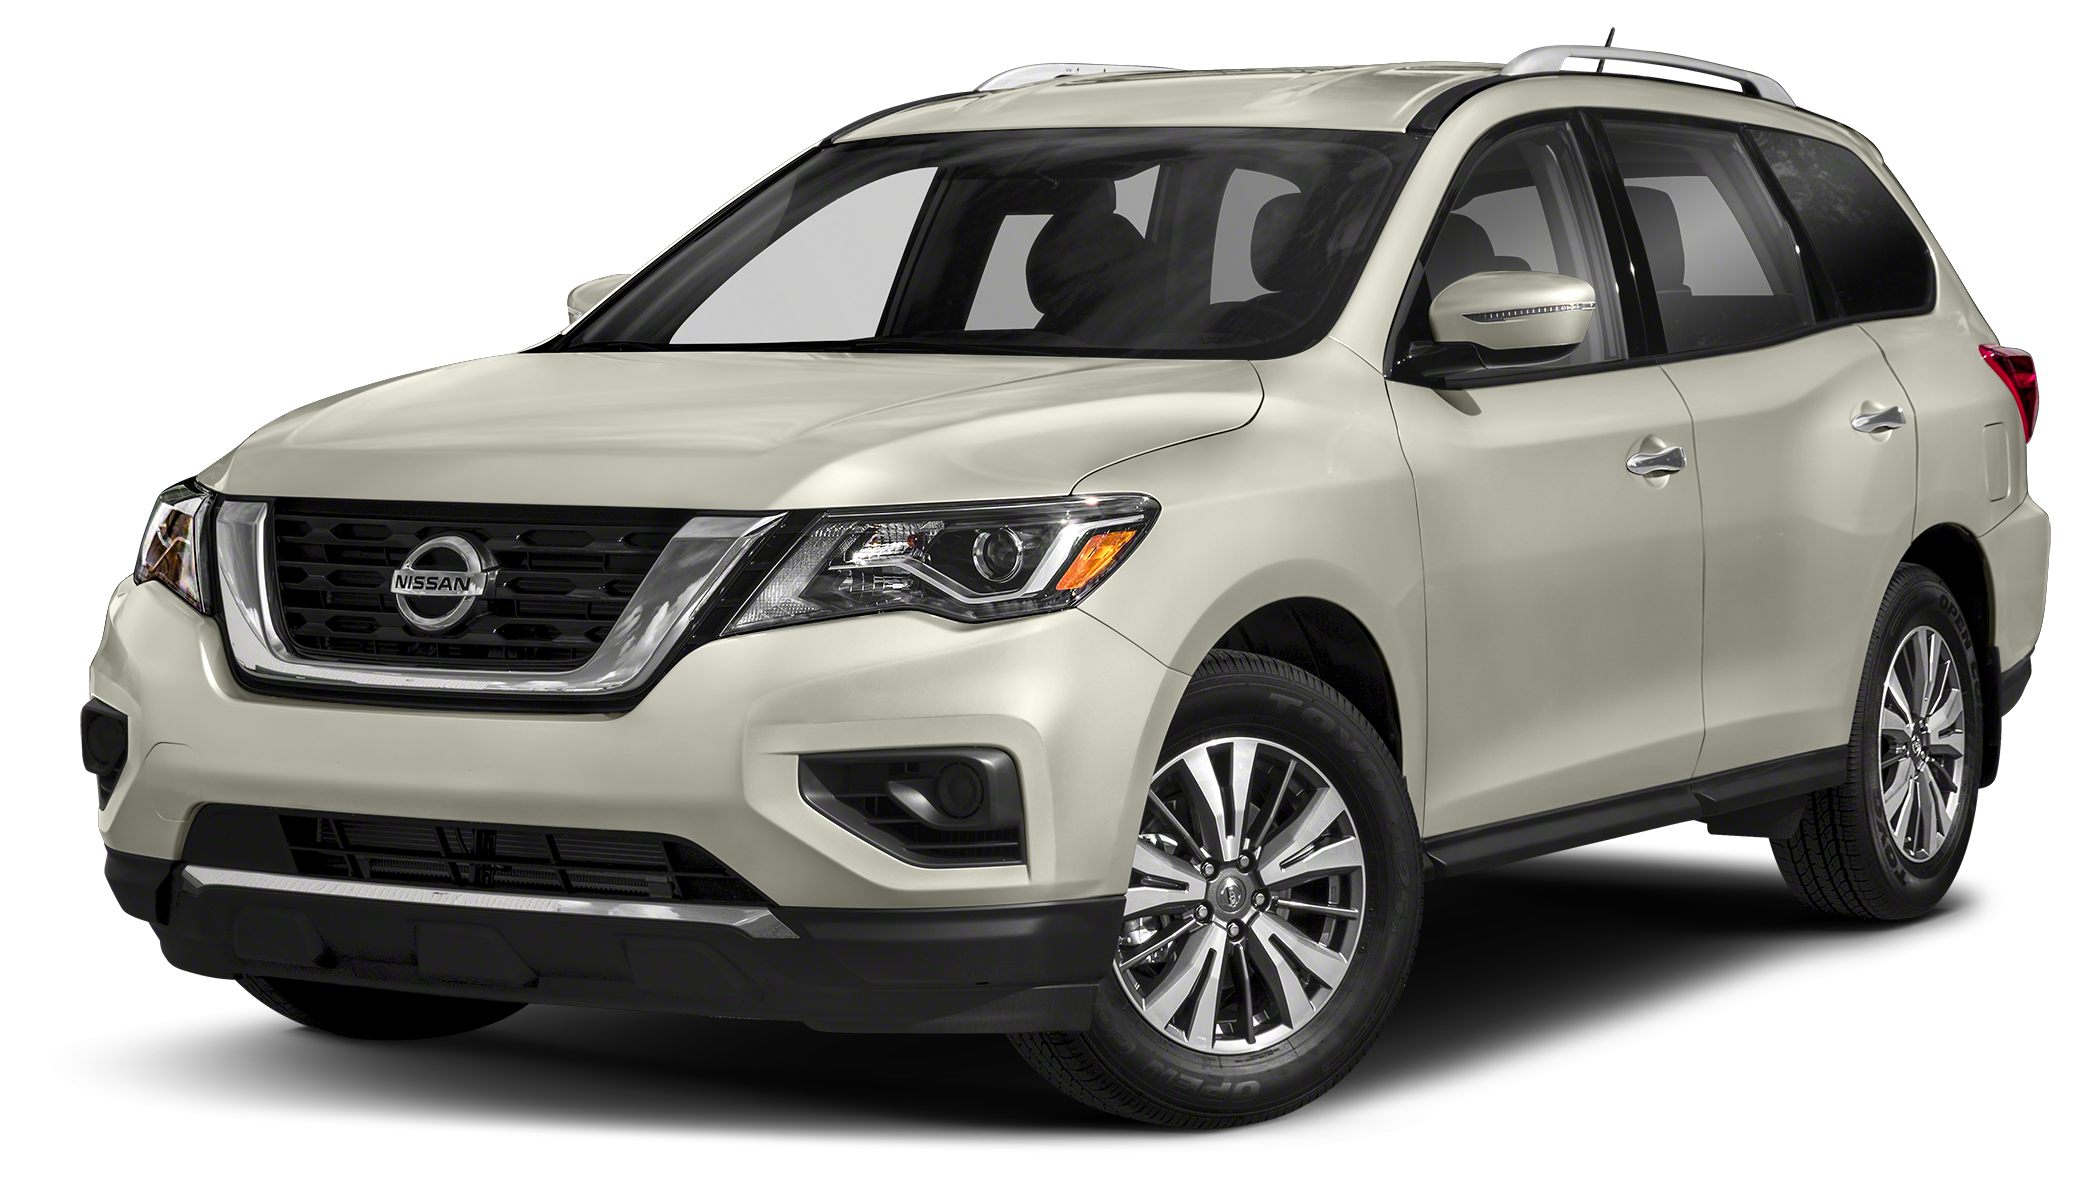 2017 Nissan Pathfinder S New Arrival This 2017 Nissan Pathfinder S will sell fast This Pathfinde